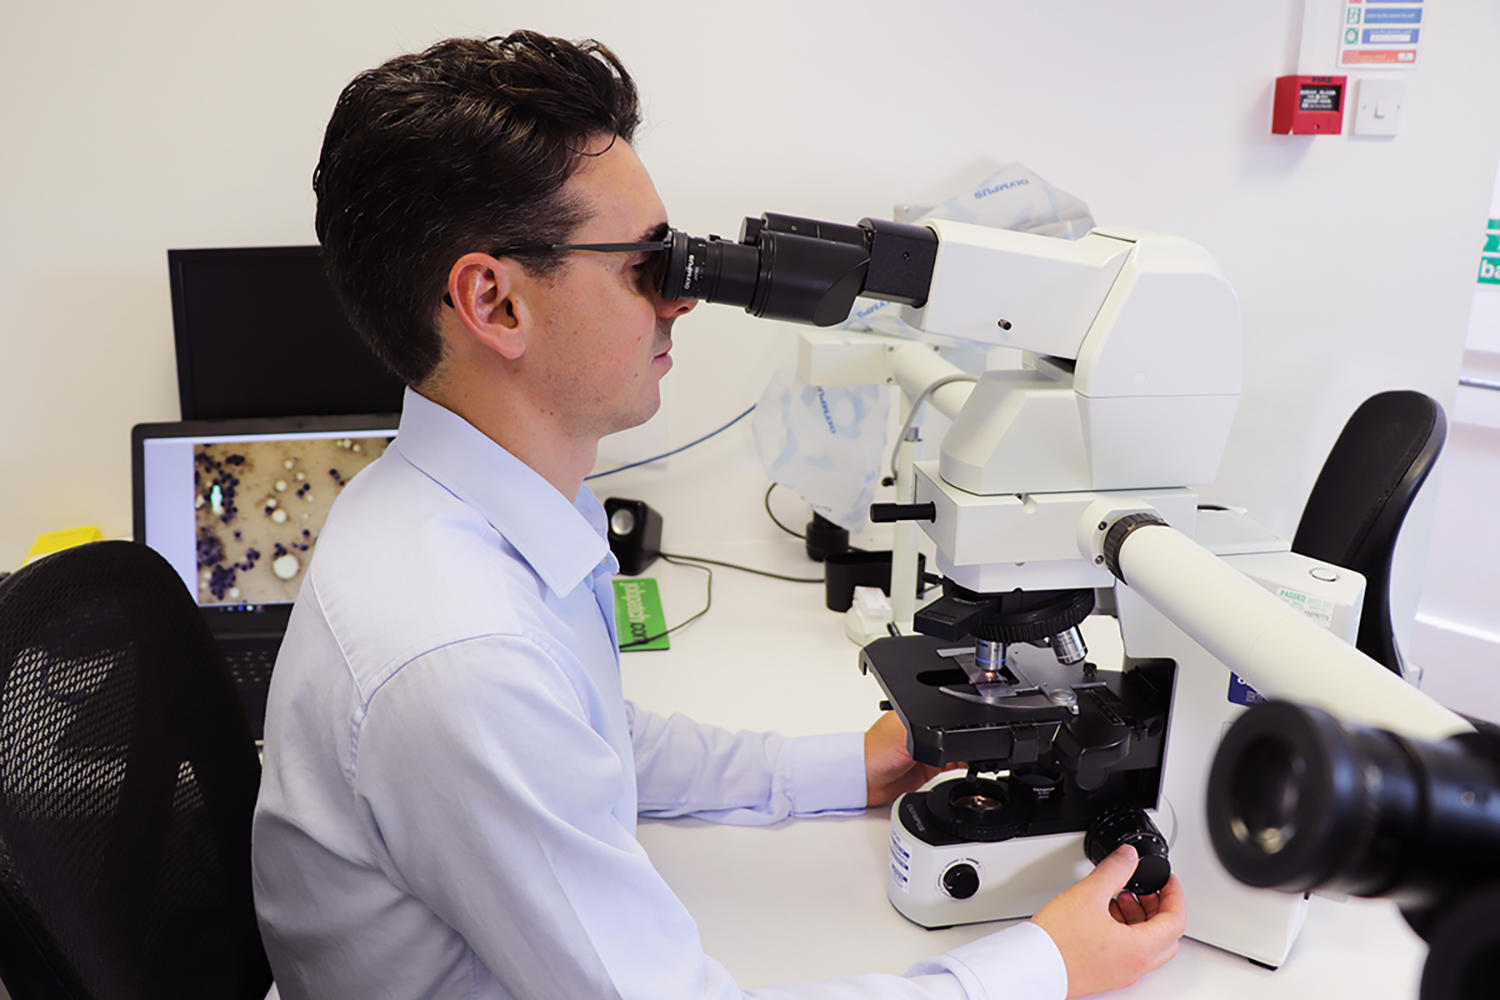 Alex Civello uses his microscope to diagnose issues such as iridociliary adenoma, a benign tumour like the one found in Crumble's eye